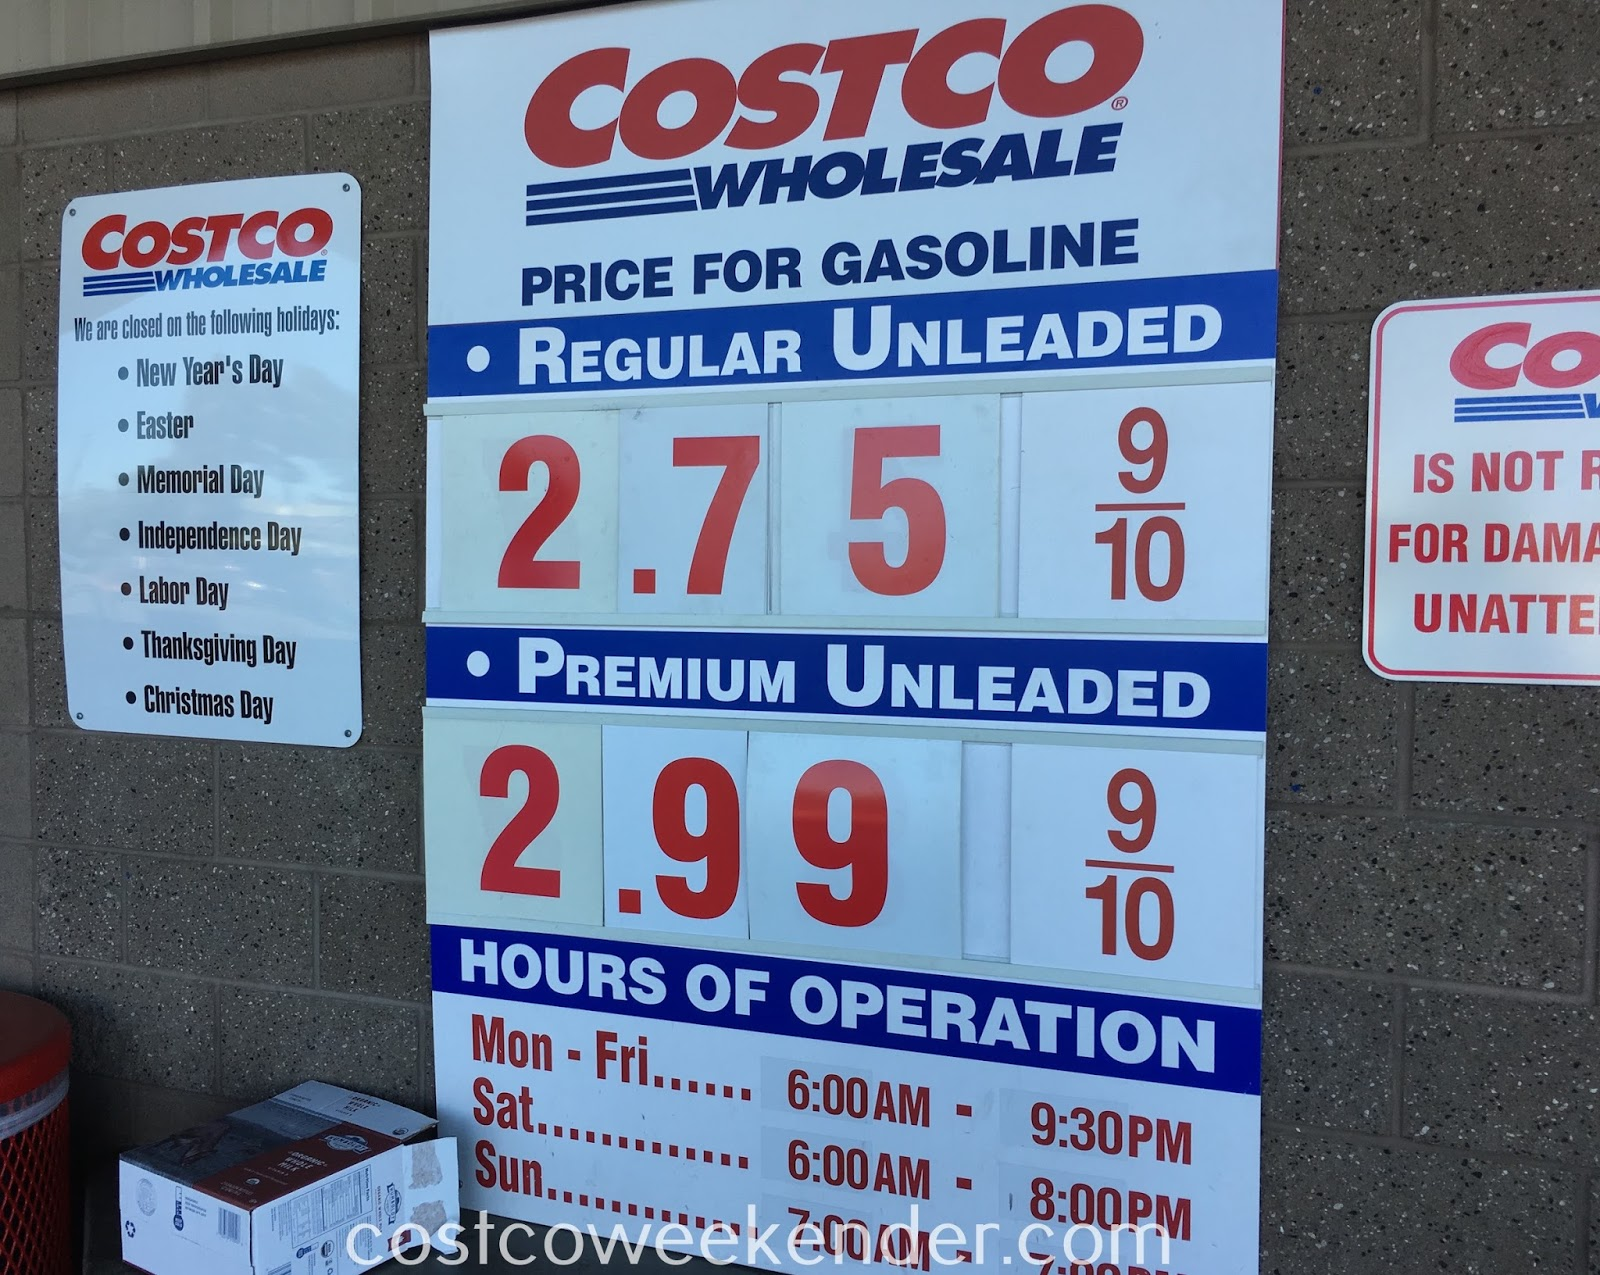 Costco gas for March 12, 2017 at Redwood City, CA